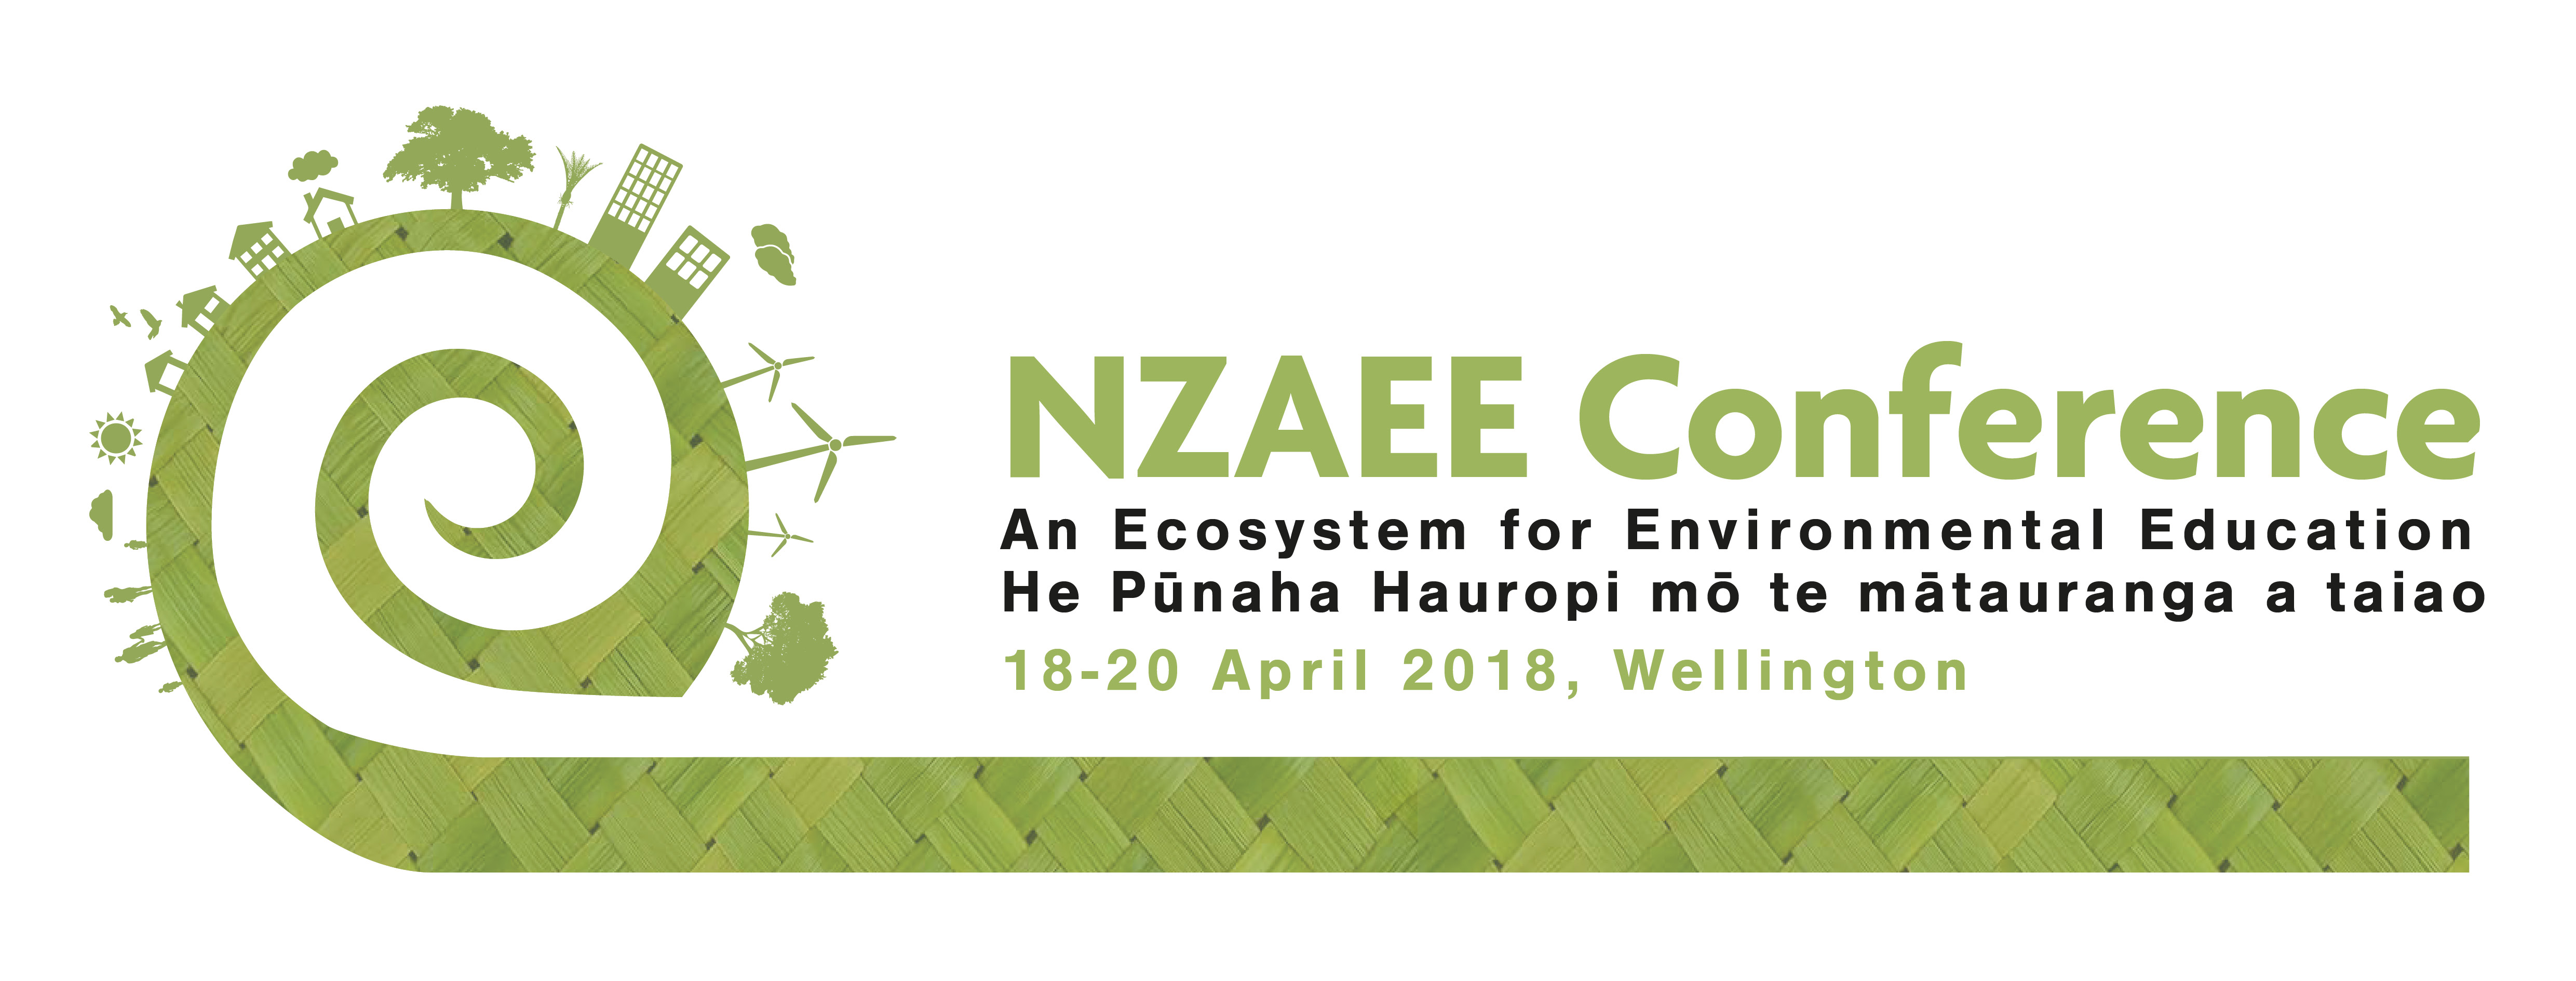 NZAEE 2018 conference logo